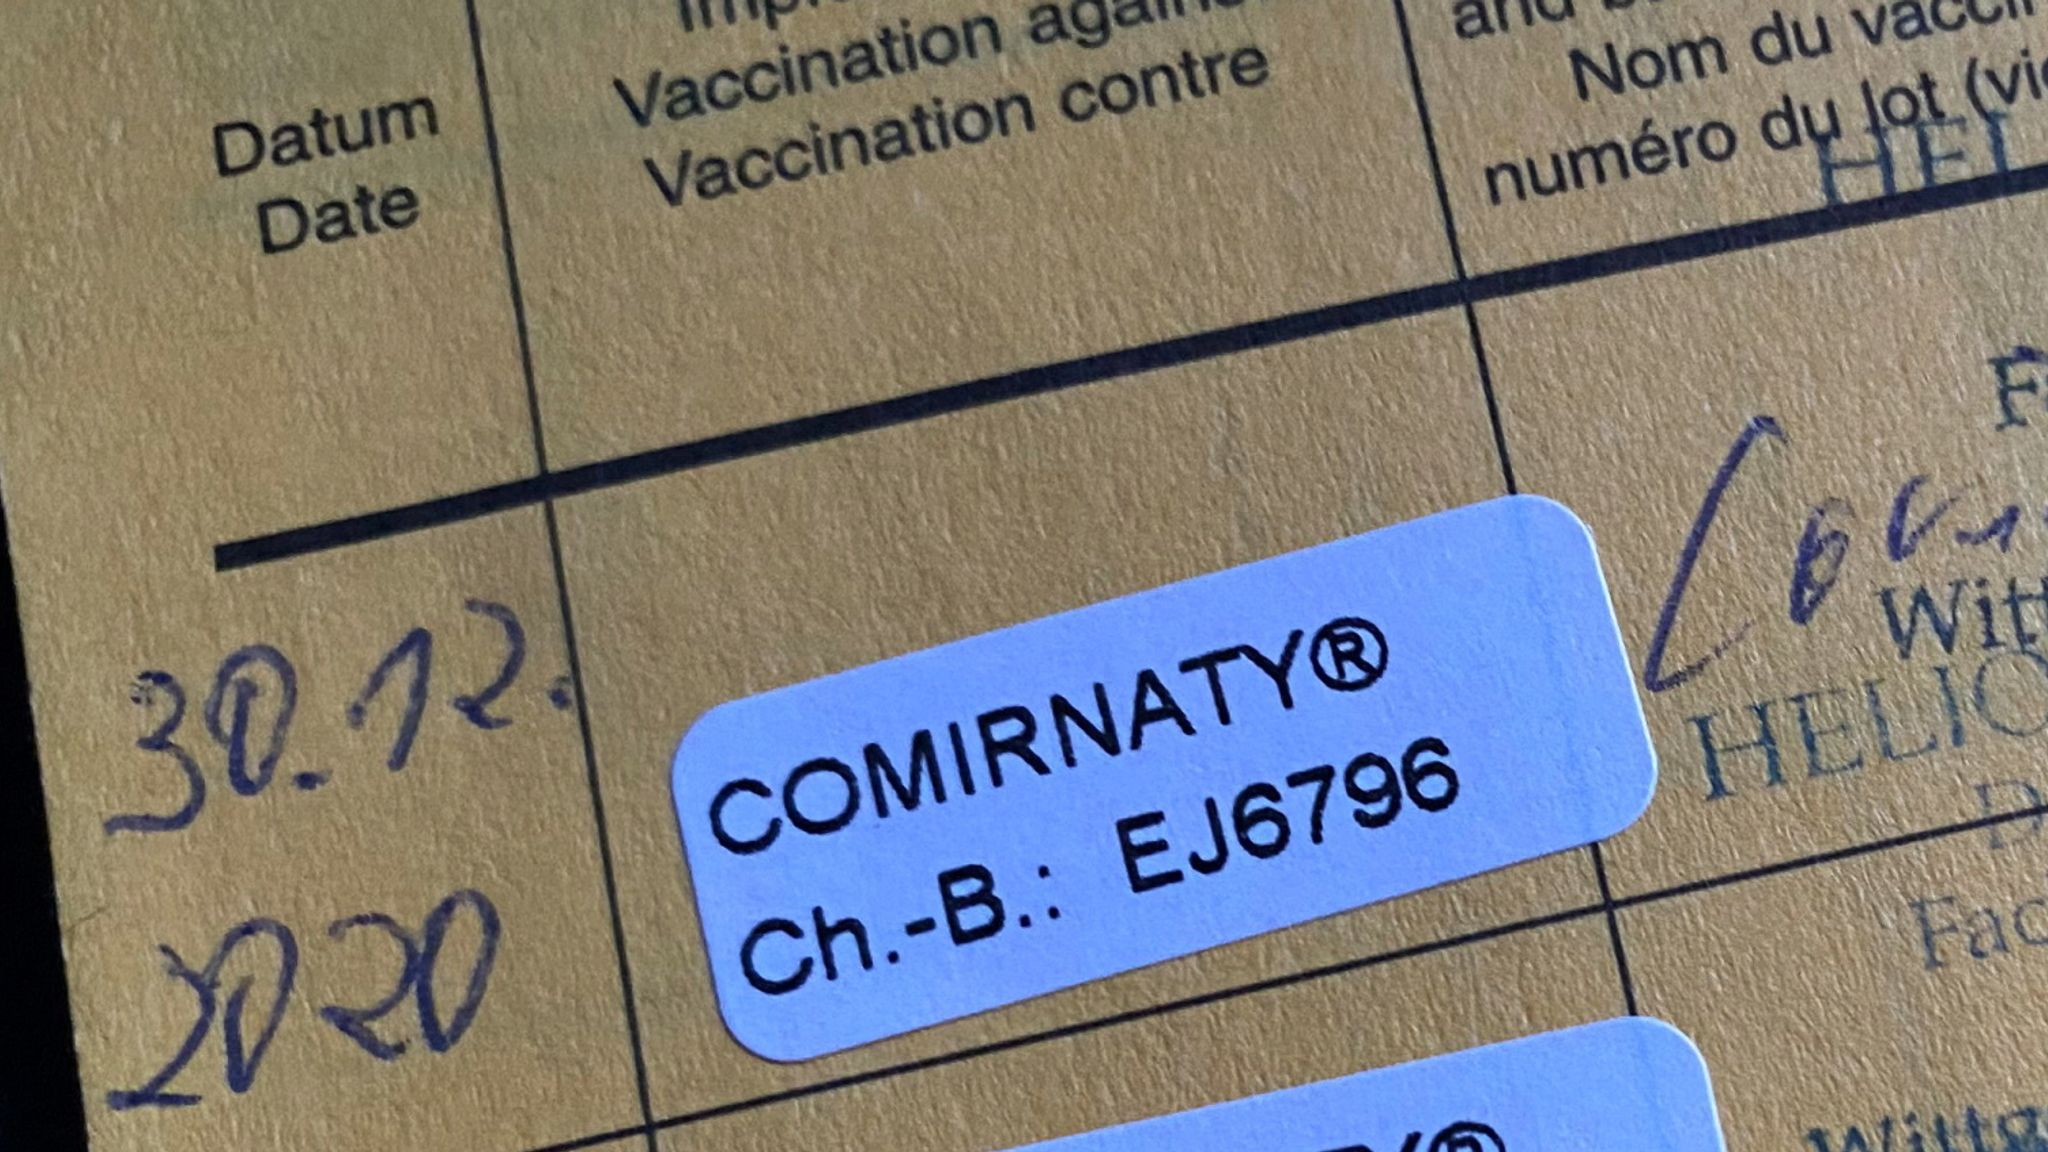 Nigeria missing from UK's list of recognised Covid-19 vaccine certificates